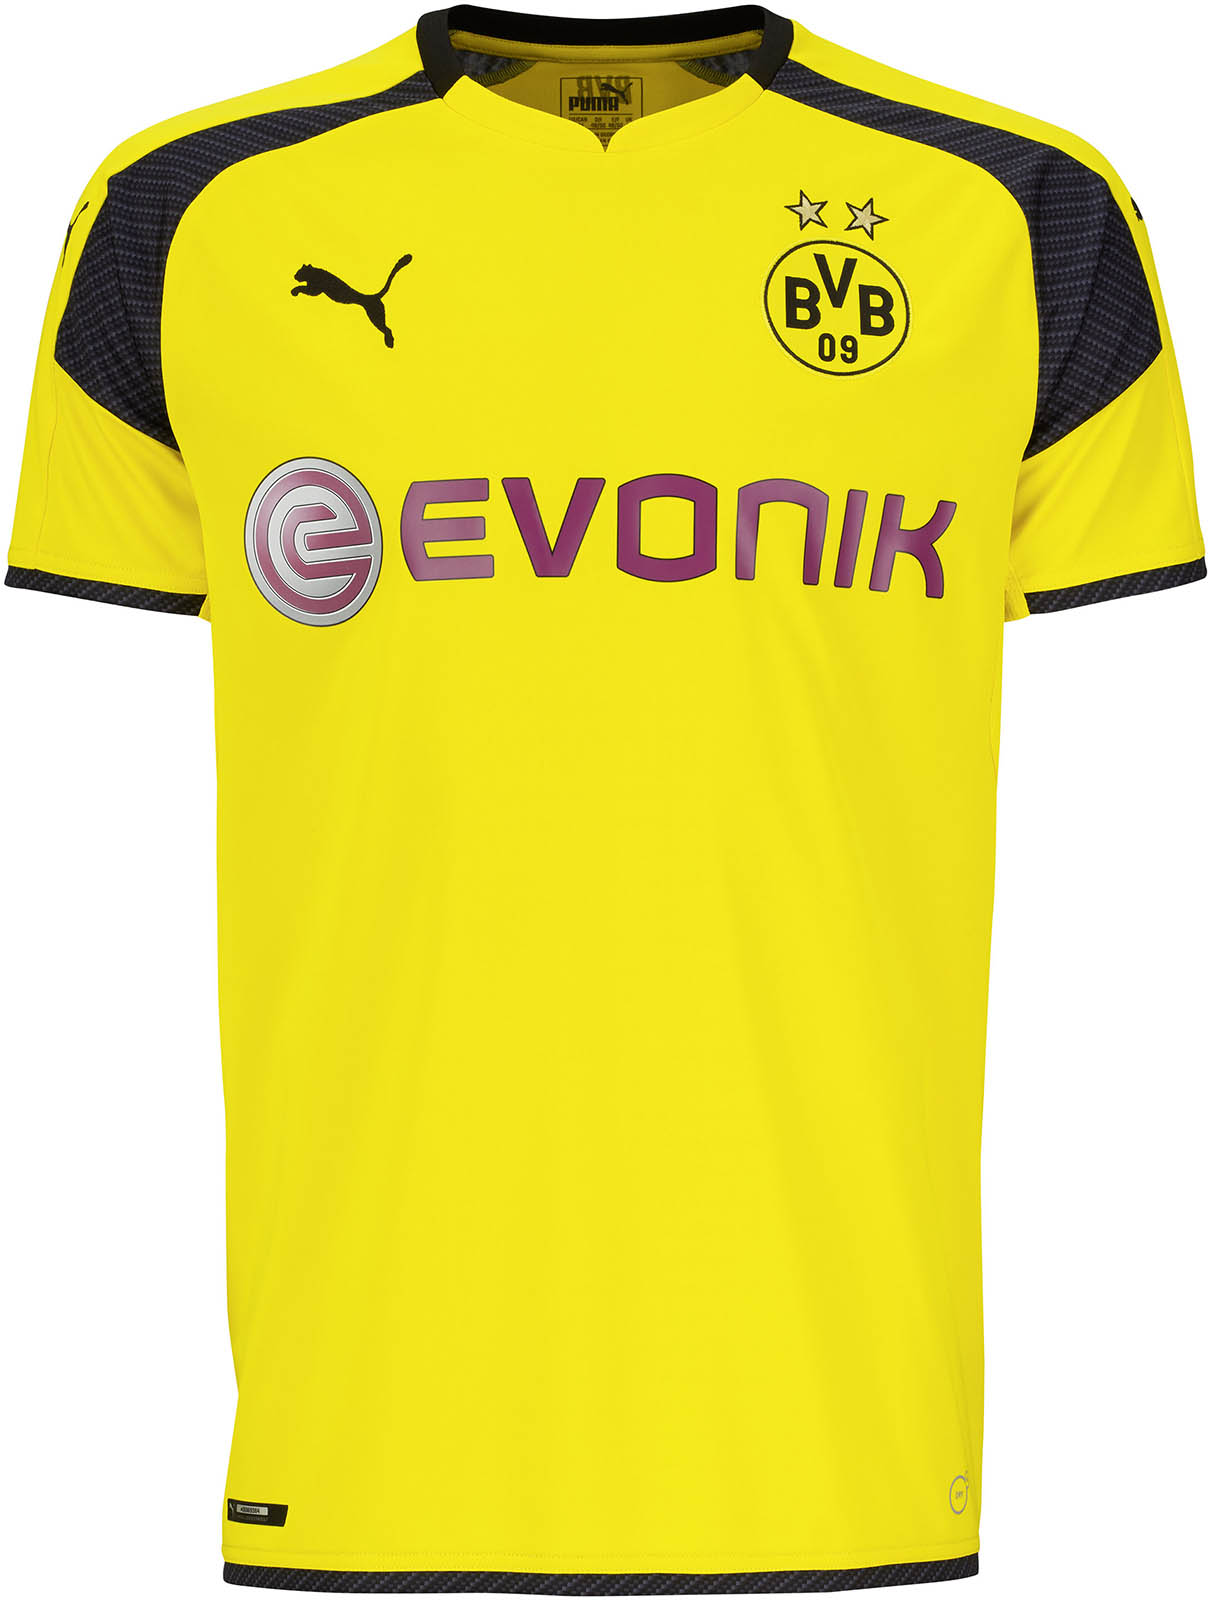 das ist das neue puma dortmund trikot. Black Bedroom Furniture Sets. Home Design Ideas